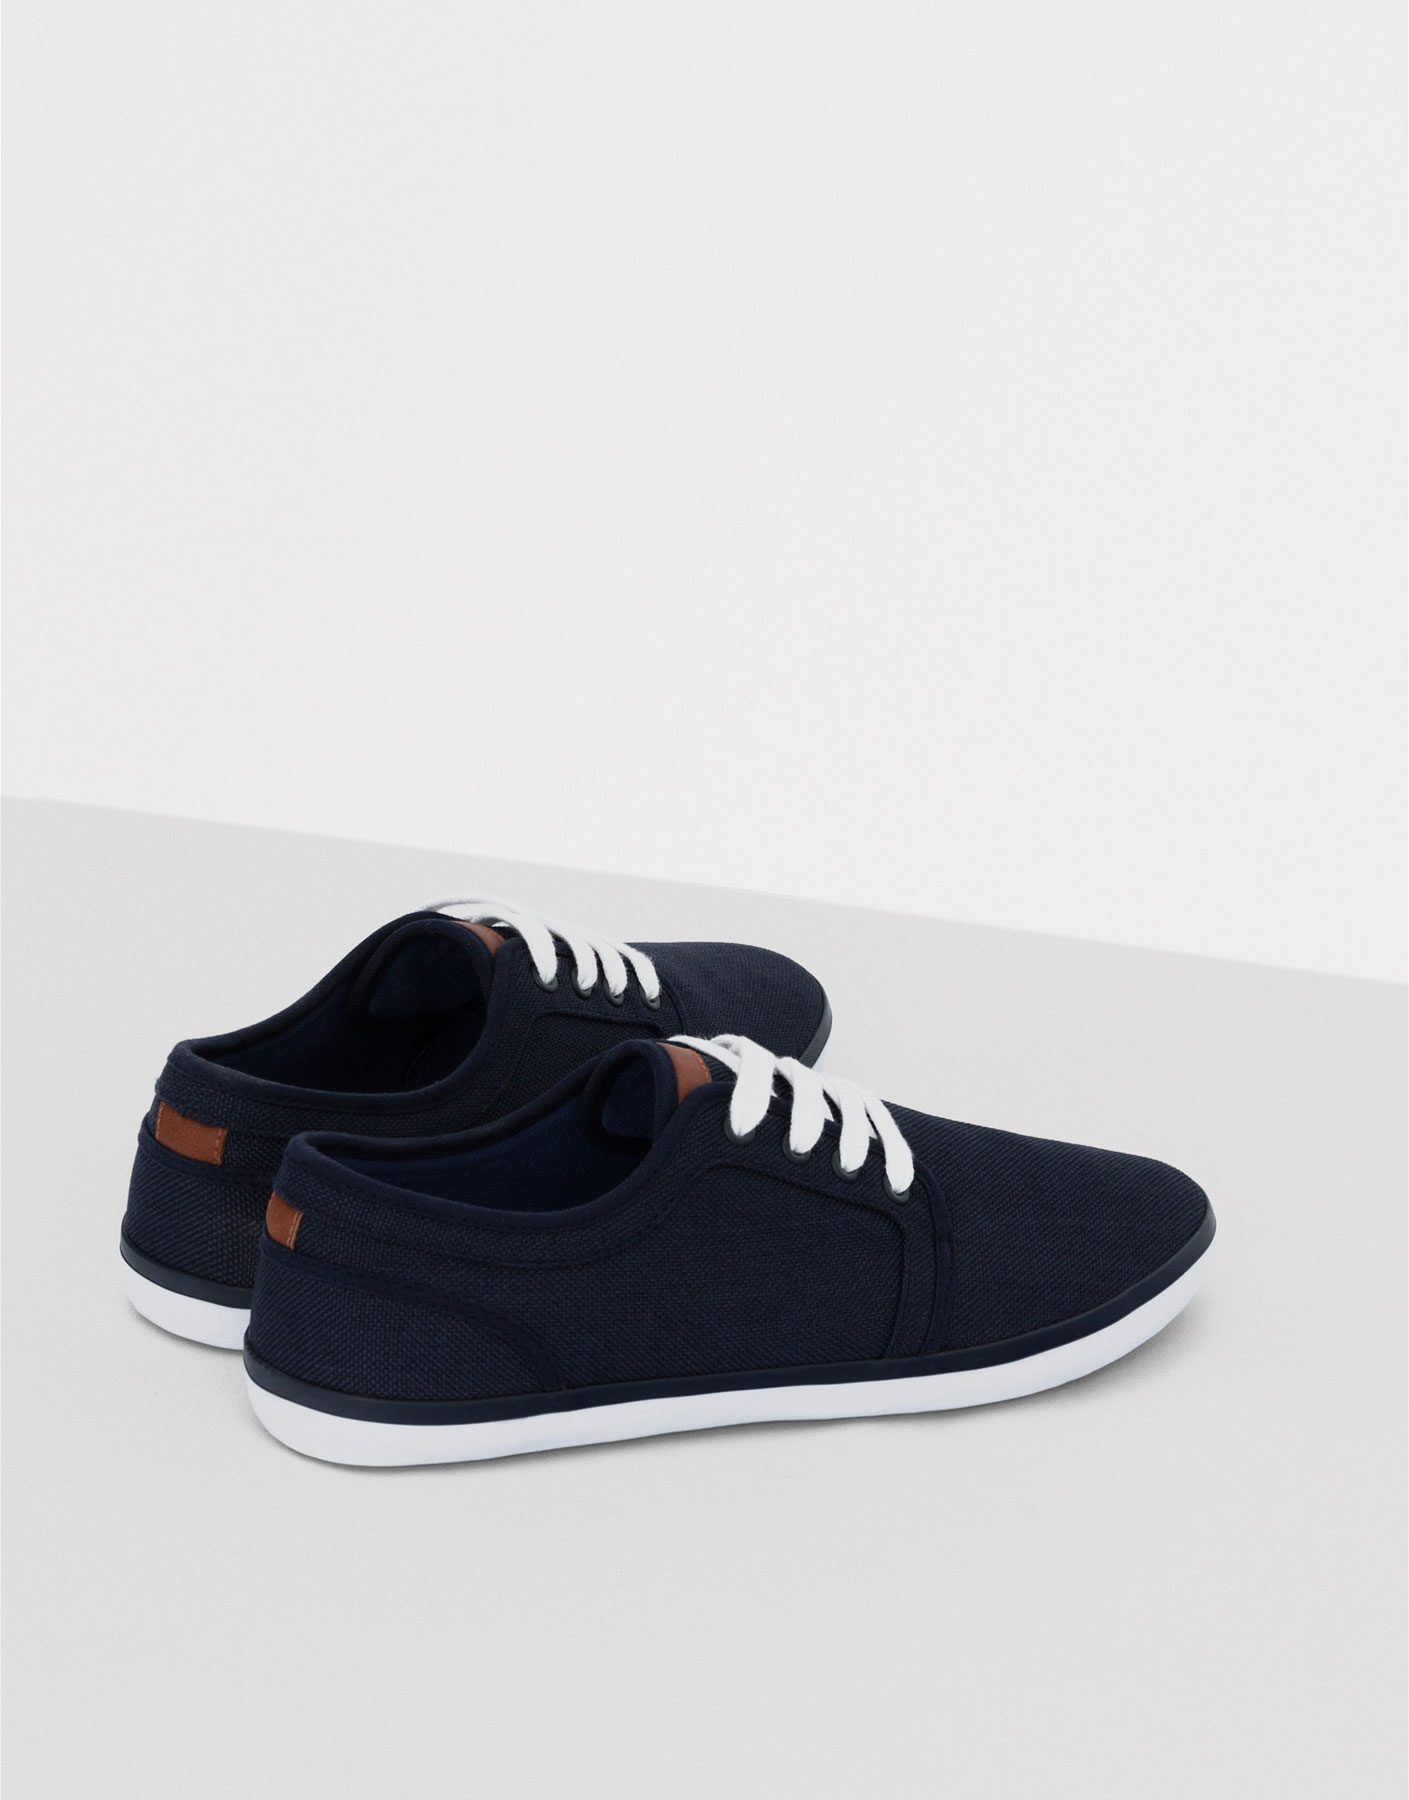 Blue fabric plimsolls